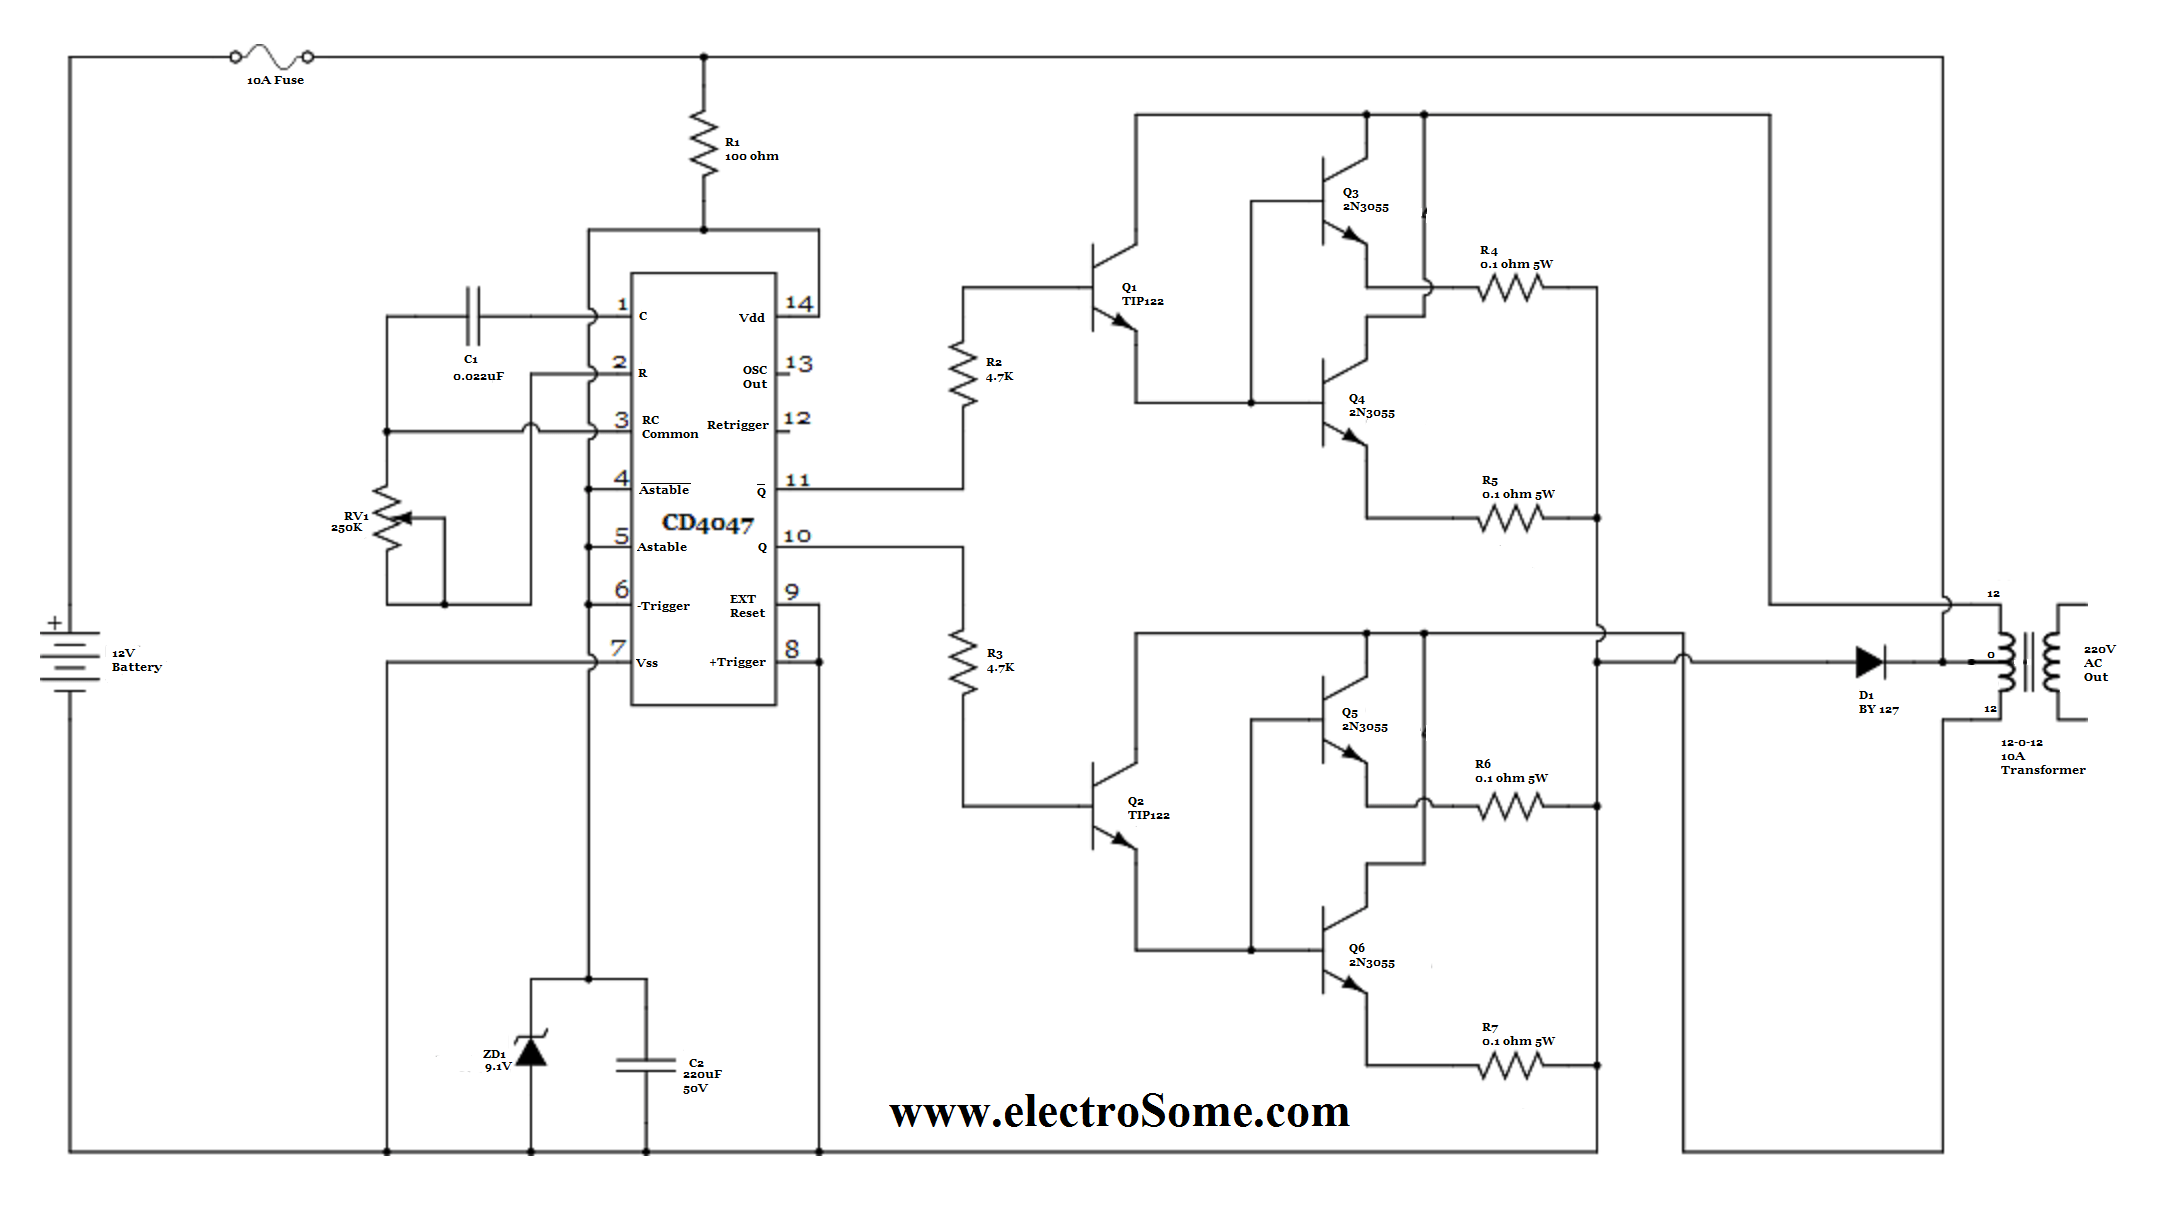 home ups inverter wiring diagram underfloor heating thermostat gt circuits low power using cd4047 l43239 next gr